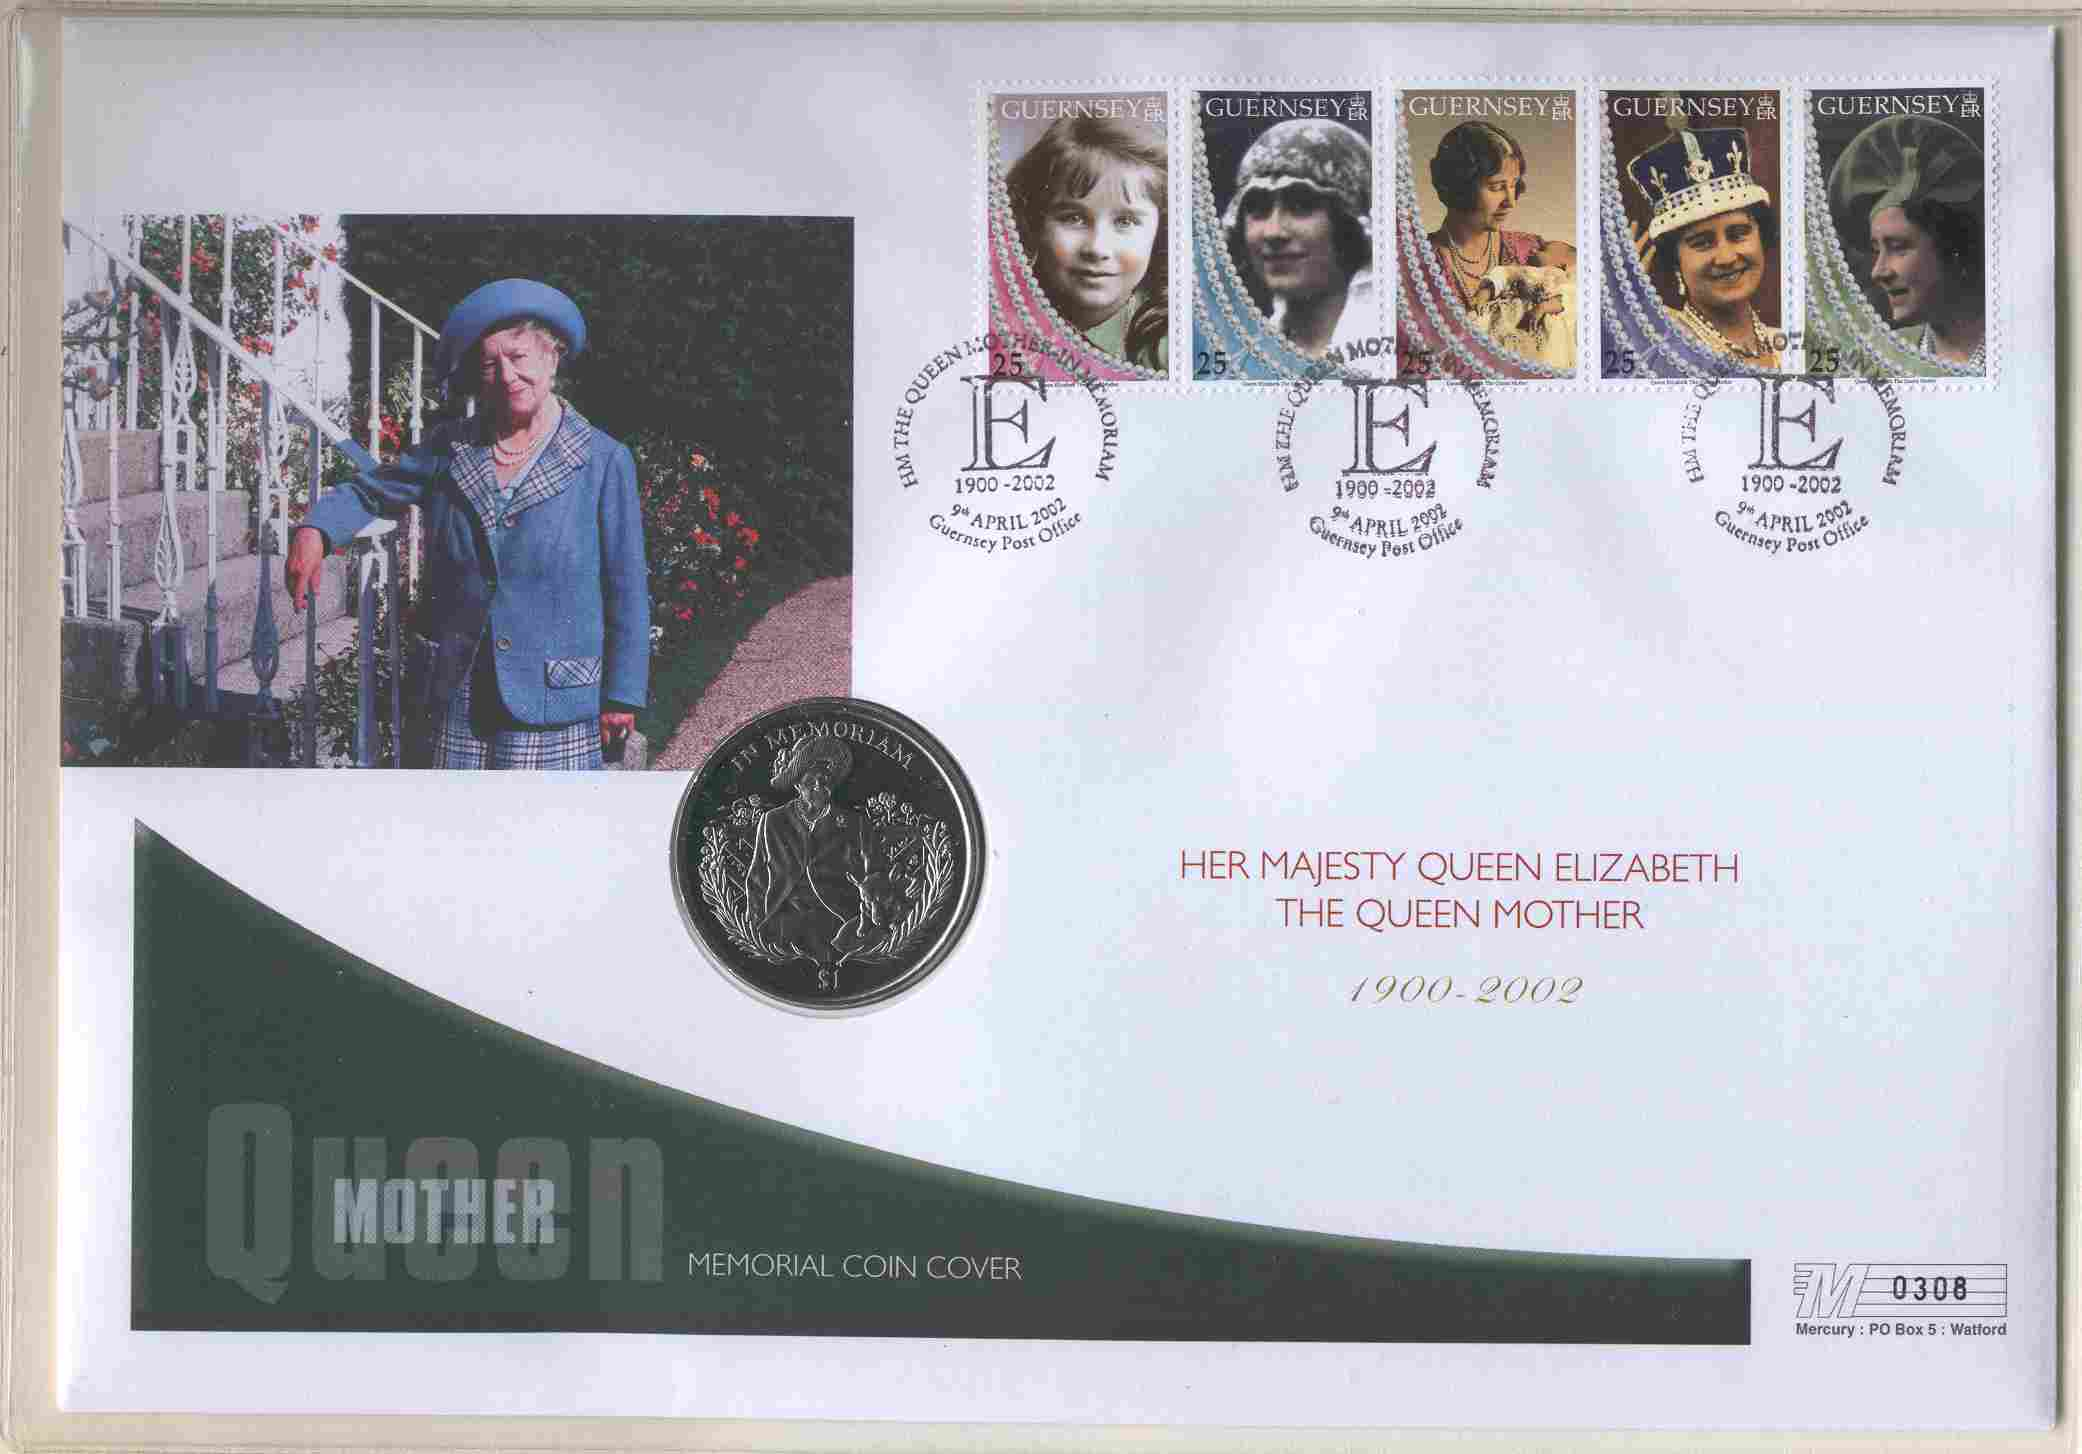 2002 Guernsey - Queen Mother Memoriam Crown - Coin Cover (2)